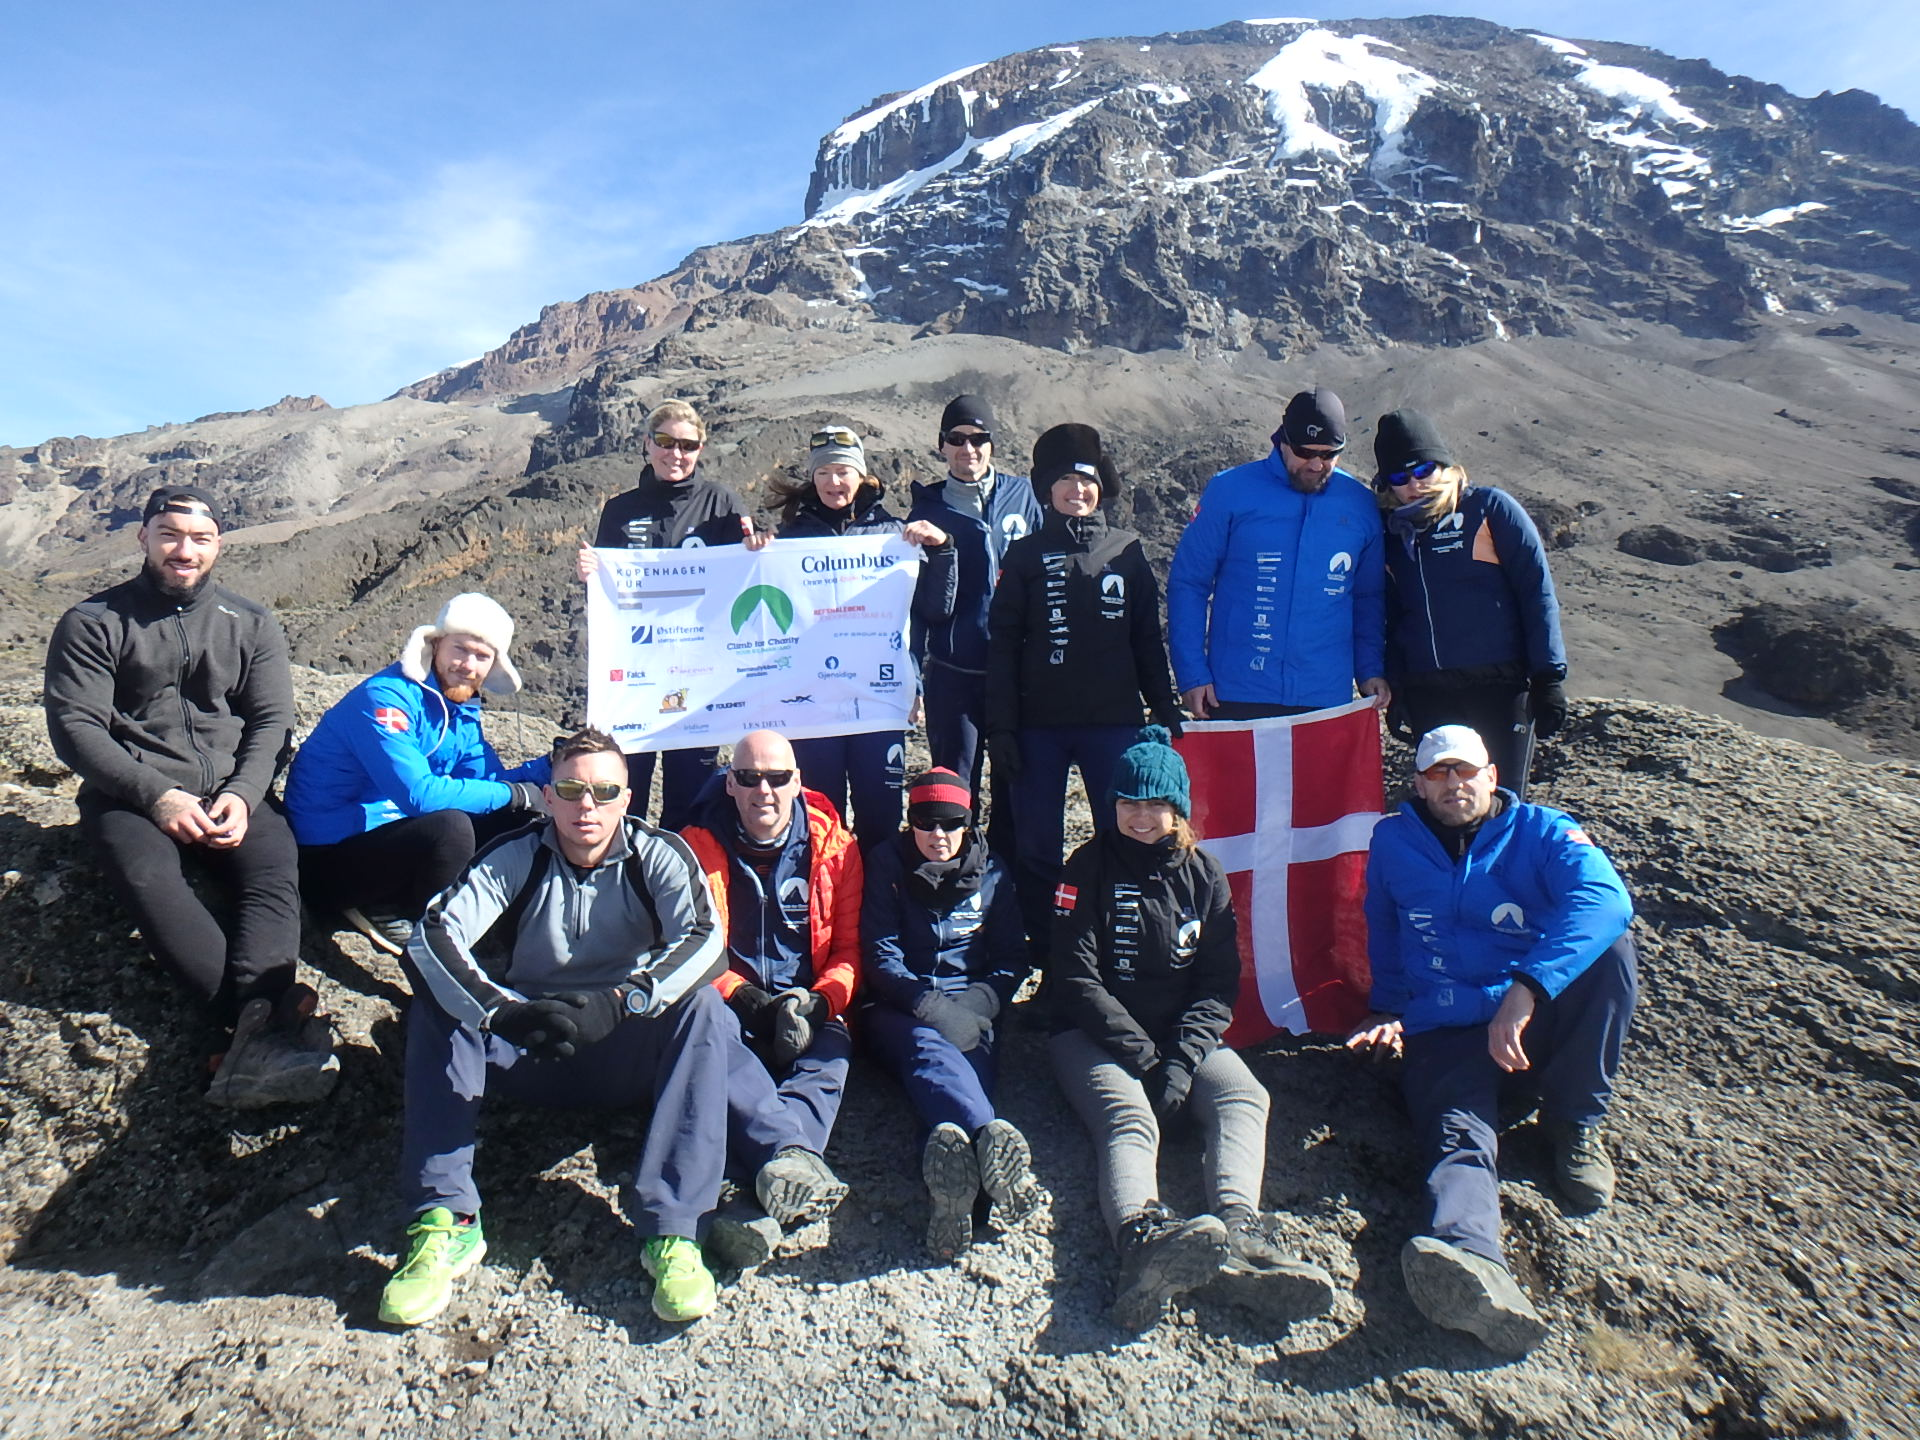 Stars beat the pain barrier to conquer Kilimanjaro ...